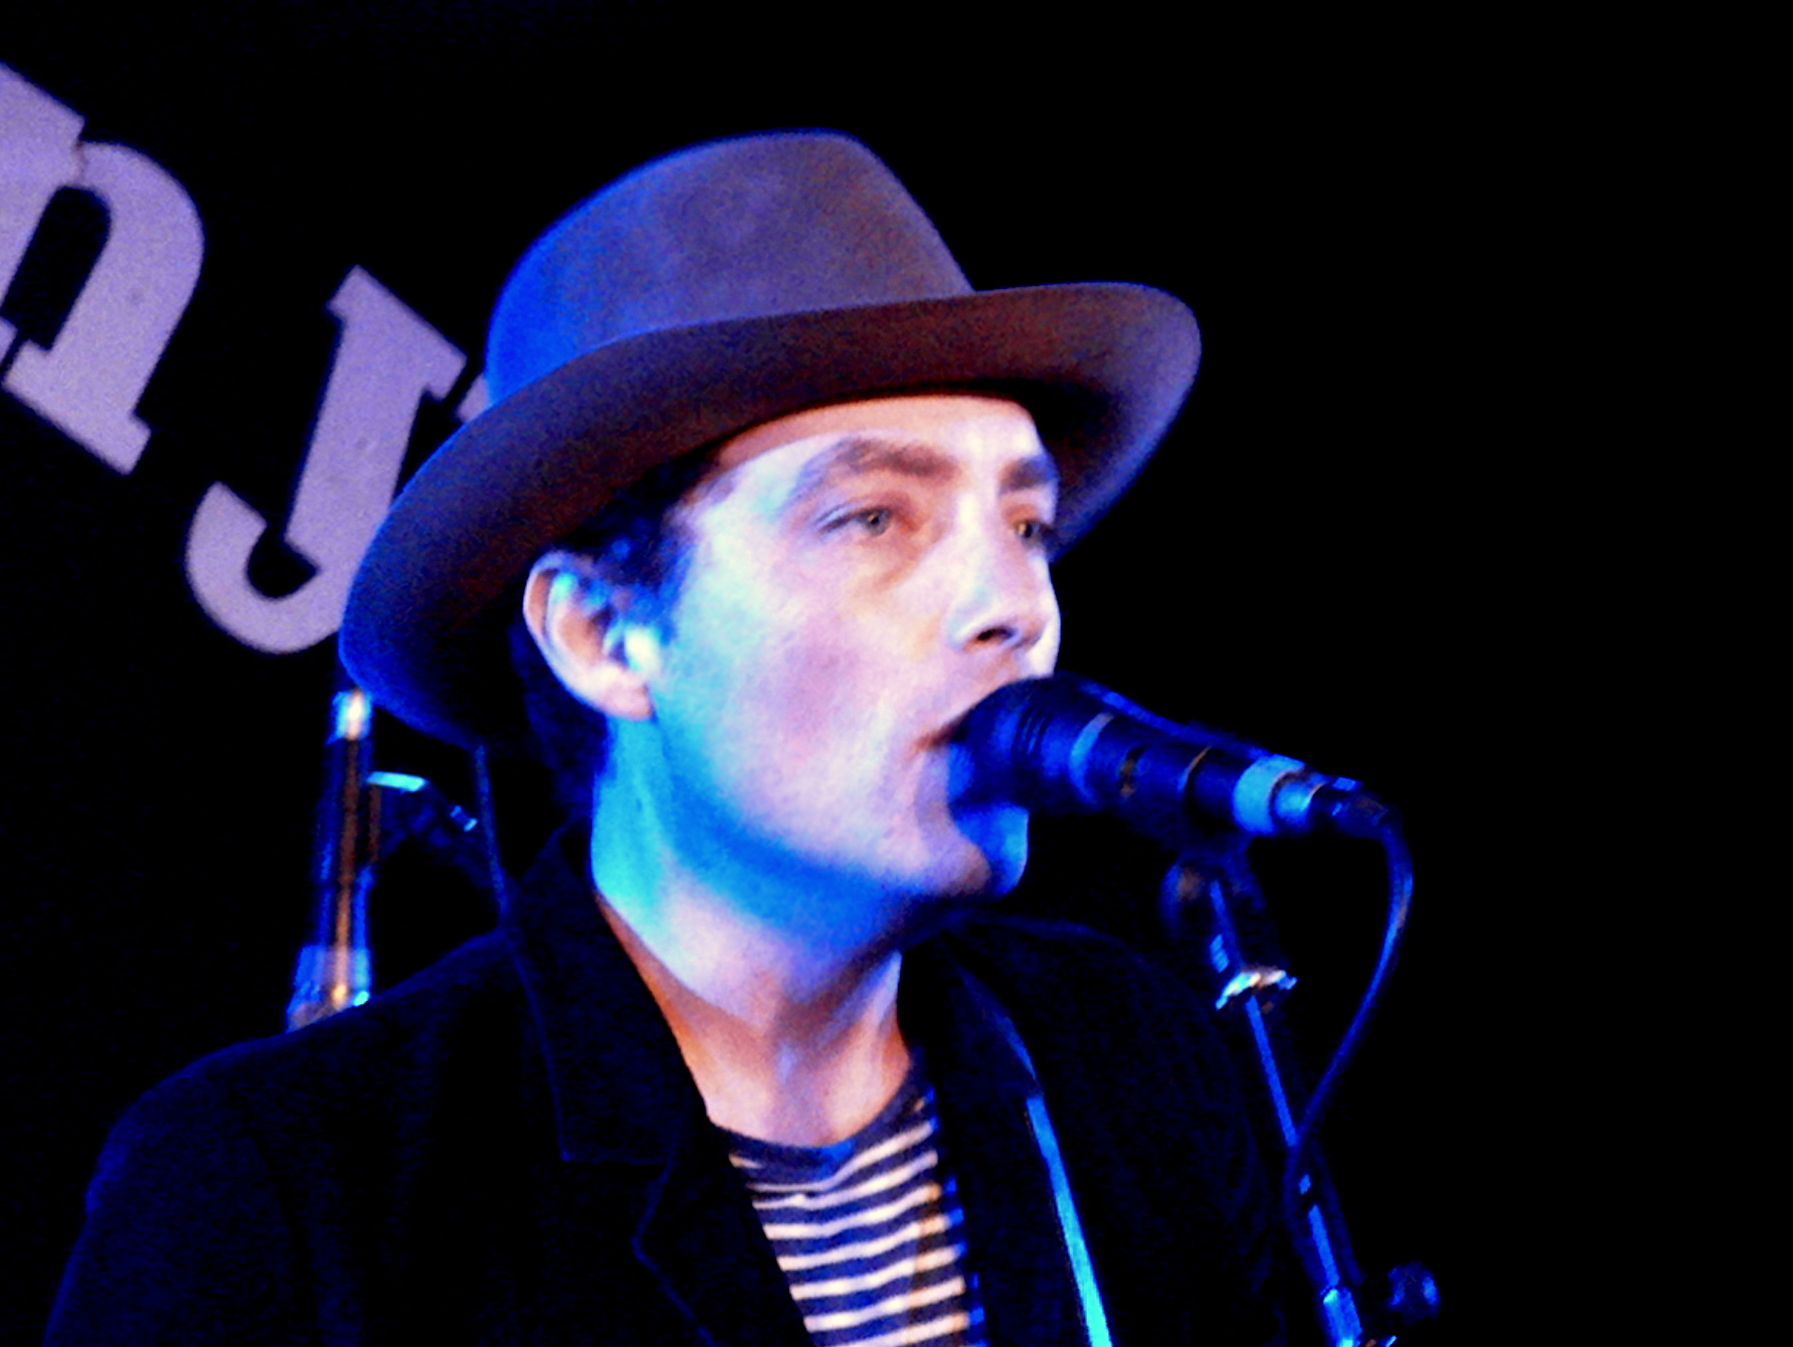 2012, Jakob Dylan at the Stone Pony, Asbury Park, New Jersey